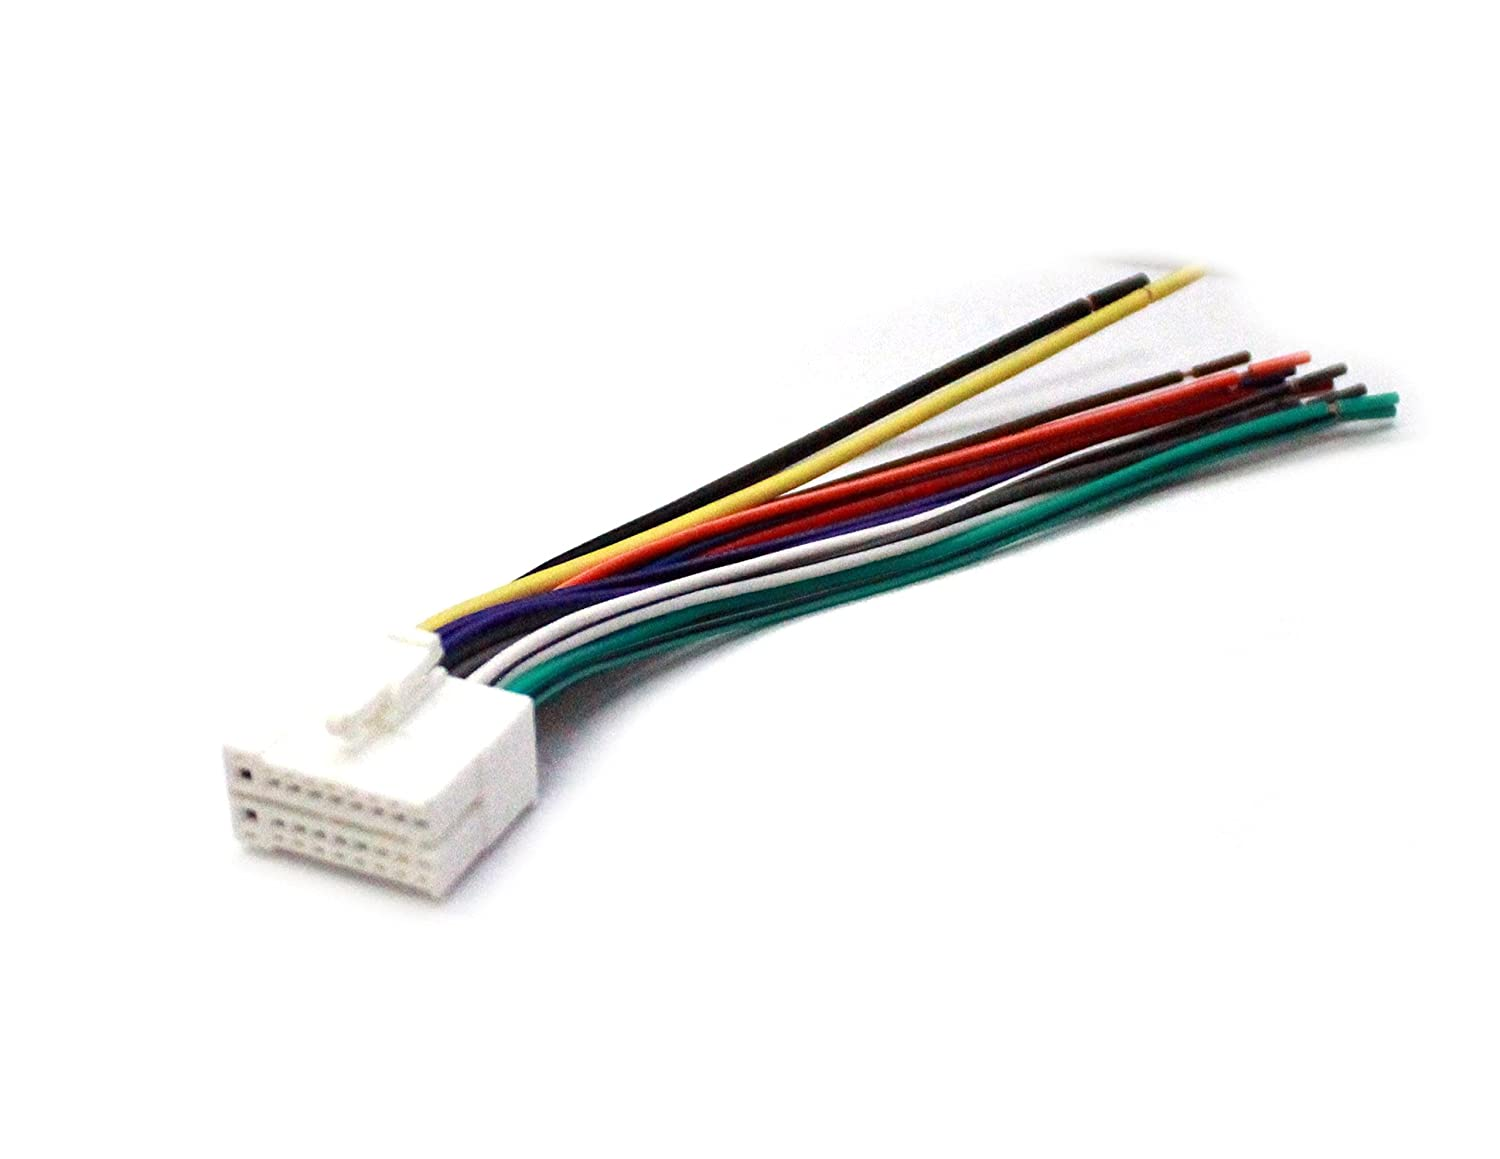 Amazon.com : American Terminal AFCL1800 Universal 18 Pin Plug for Clarion,  White : Car Electronics